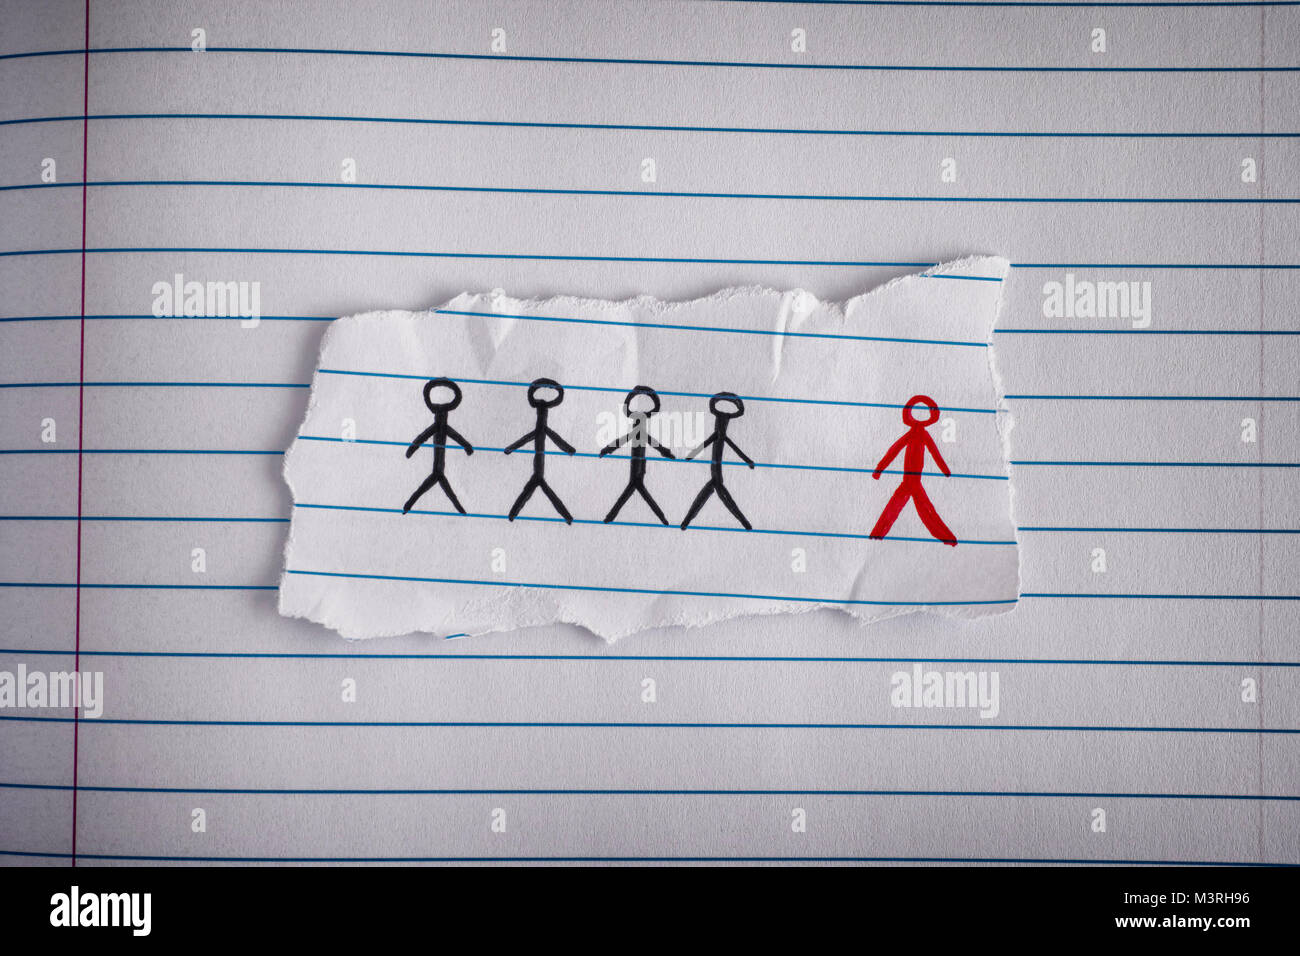 Piece of paper with drawn people and the red one is the odd one out. Concept Image. Close up. - Stock Image